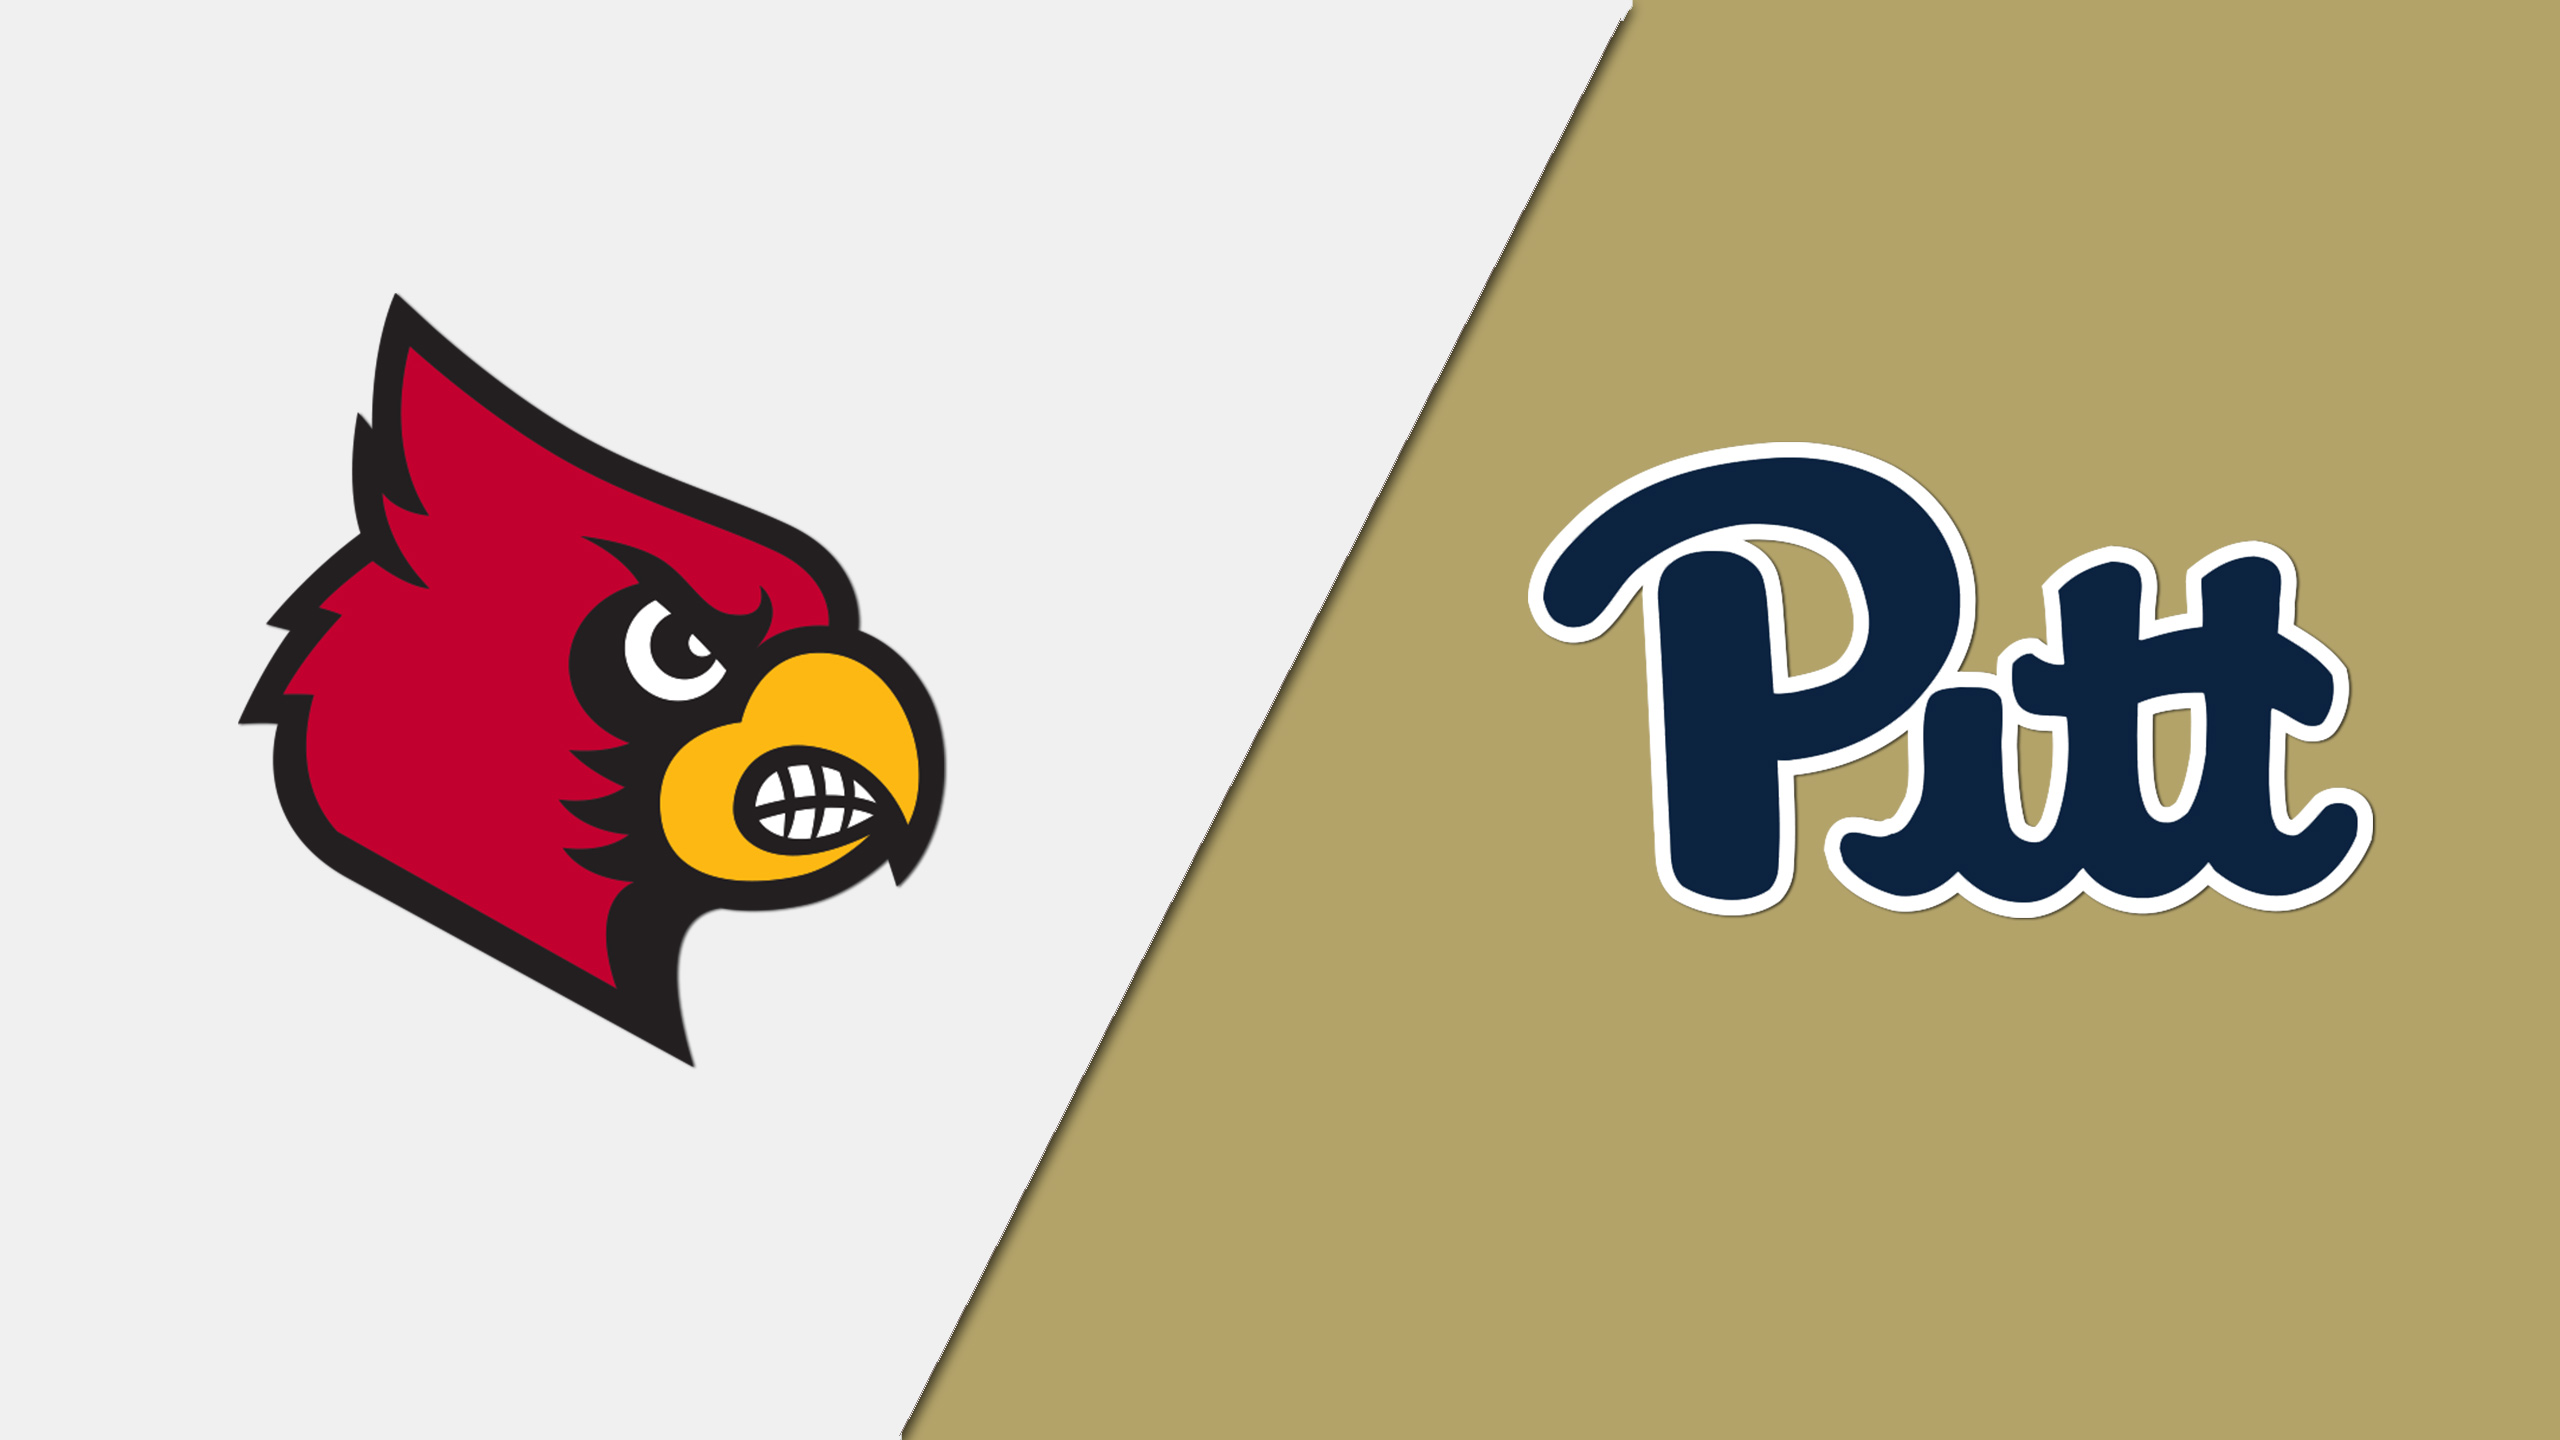 #21 Louisville vs. #6 Pittsburgh (W Volleyball)